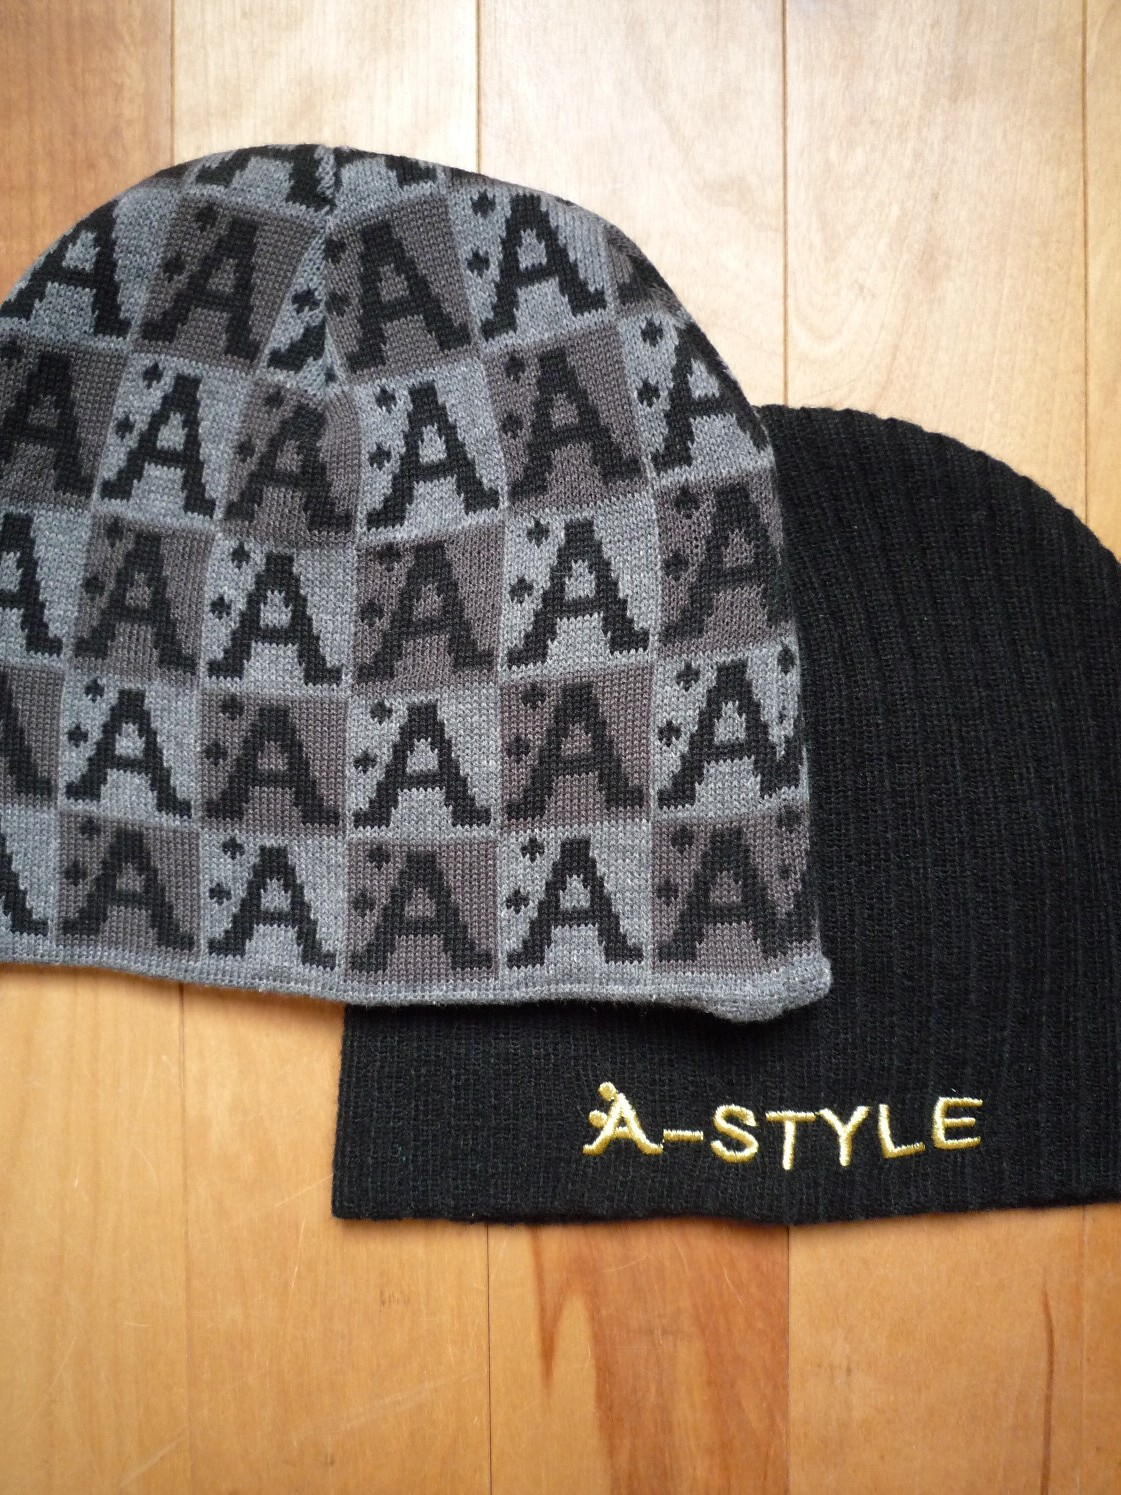 a-style2